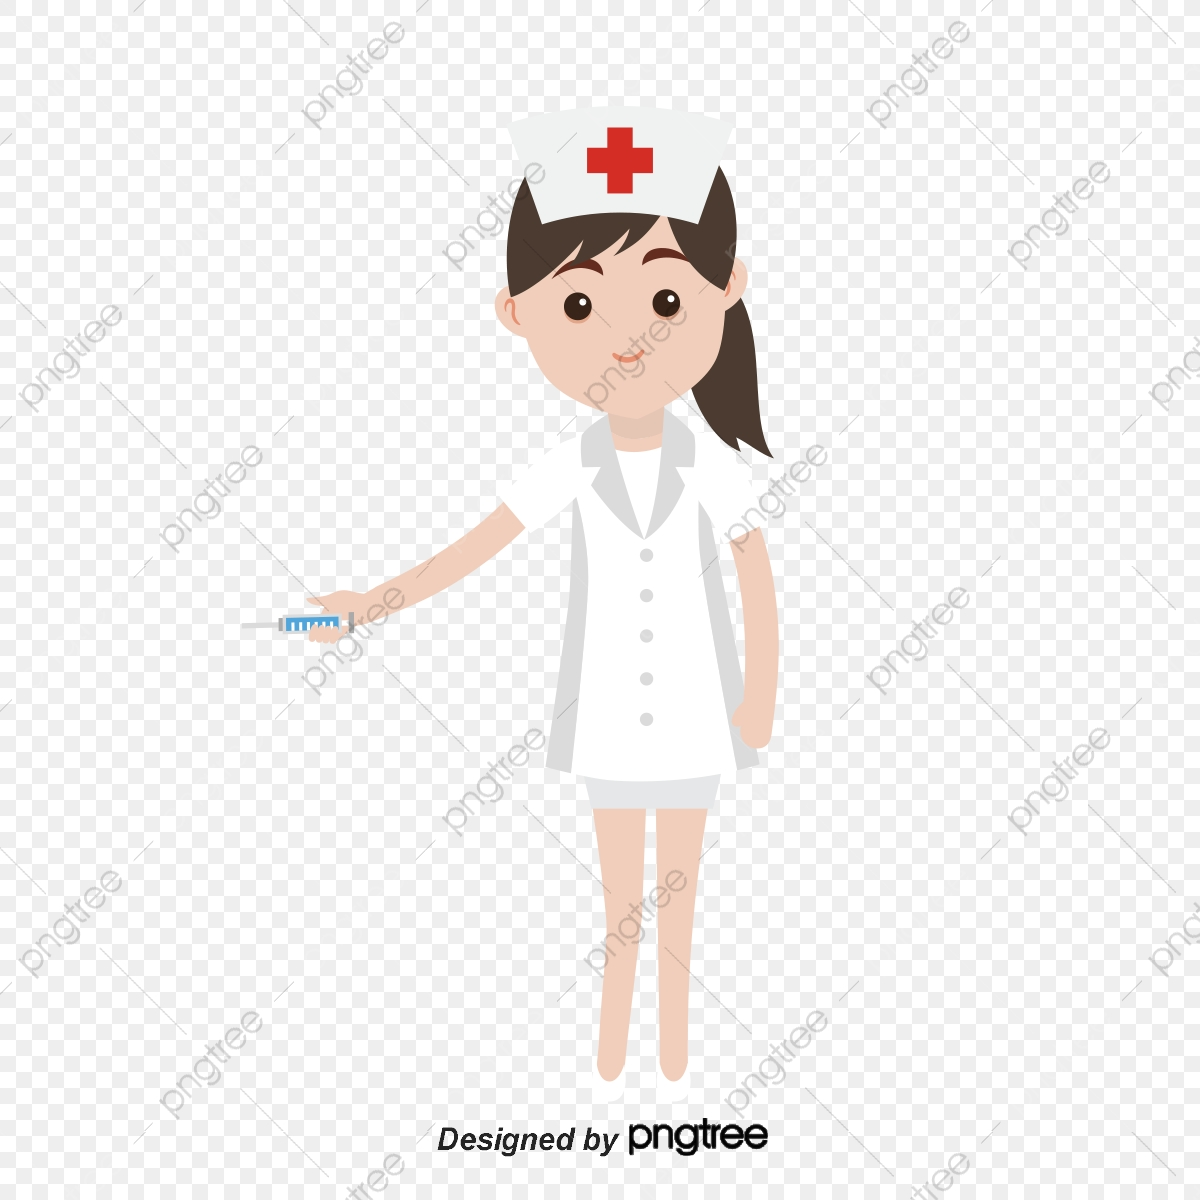 hight resolution of commercial use resource upgrade to premium plan and get license authorization upgradenow nurse nurse clipart